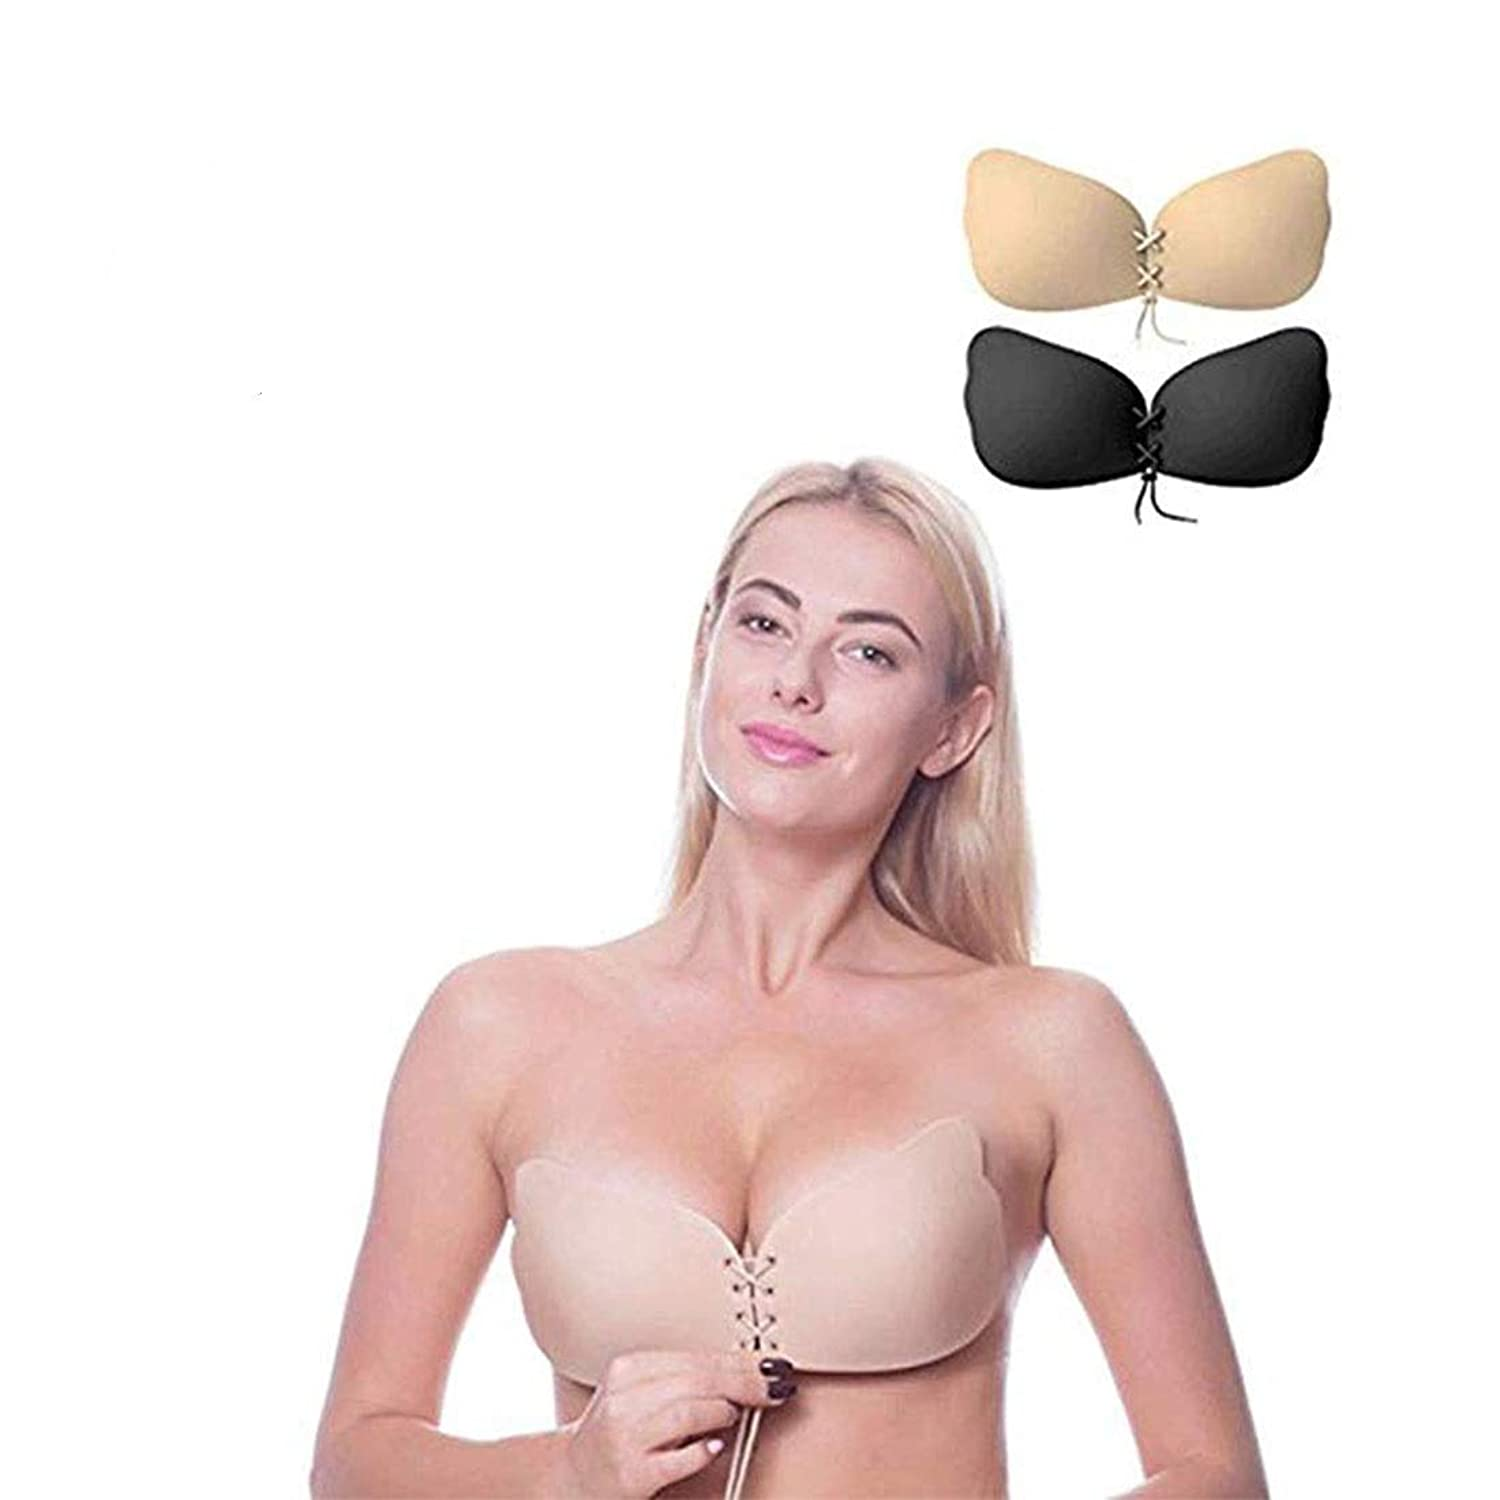 409bab64373 Skin Friendly  Women s Strapless bras with harmless biological silicone gel  adhesive gently adhere to skin